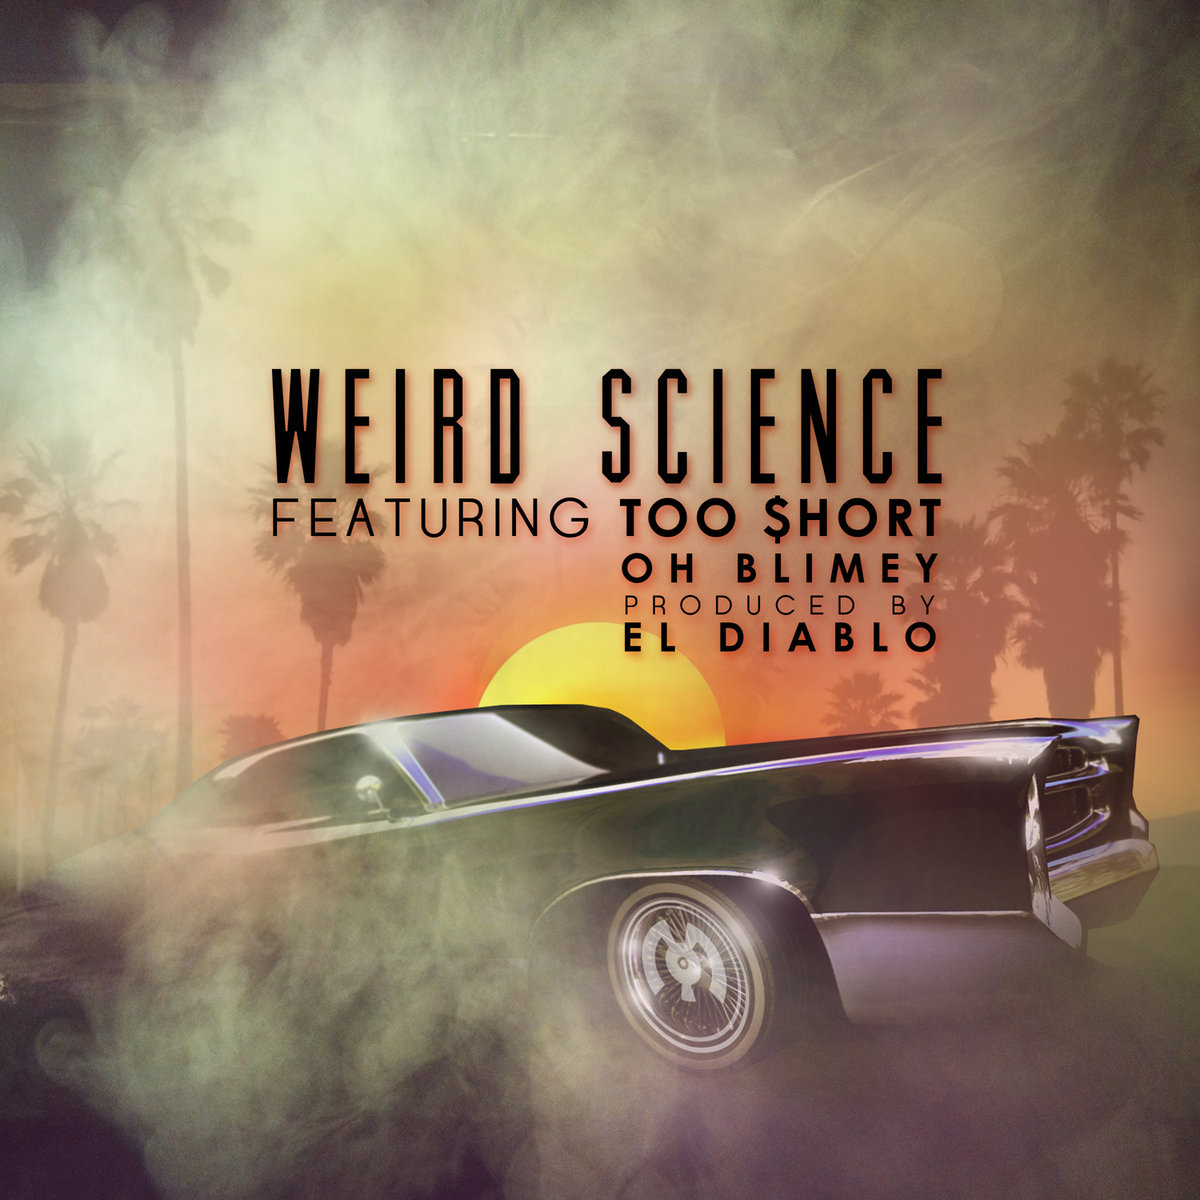 Too $hort, Oh Blimey, El Diablo - Weird Science (Skulltrane Remix) @ 'Weird Science' album (electronic, dubstep)